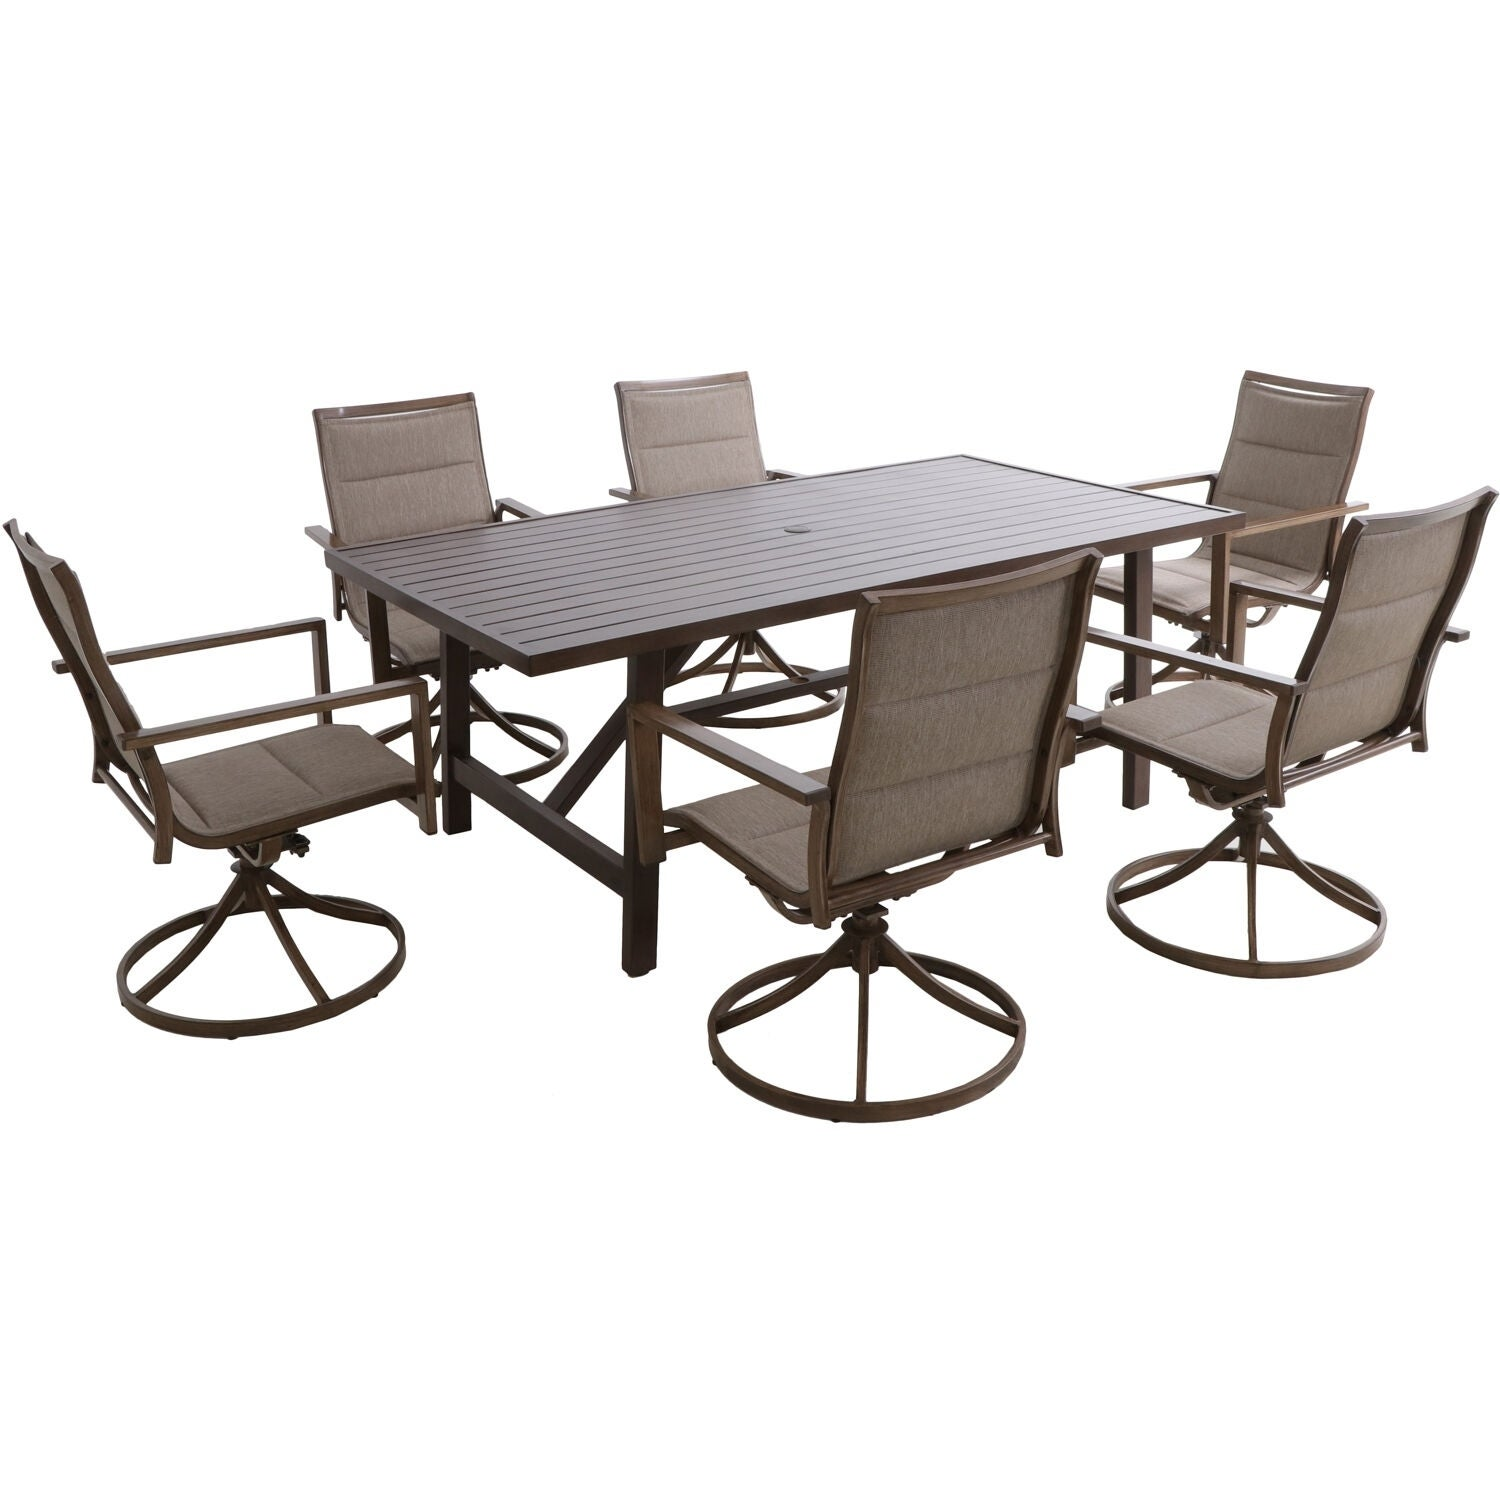 Pleasant Fairhope 7Pc Dining Set 6 Swivel Chairs And 74X40 Tressle Table Andrewgaddart Wooden Chair Designs For Living Room Andrewgaddartcom